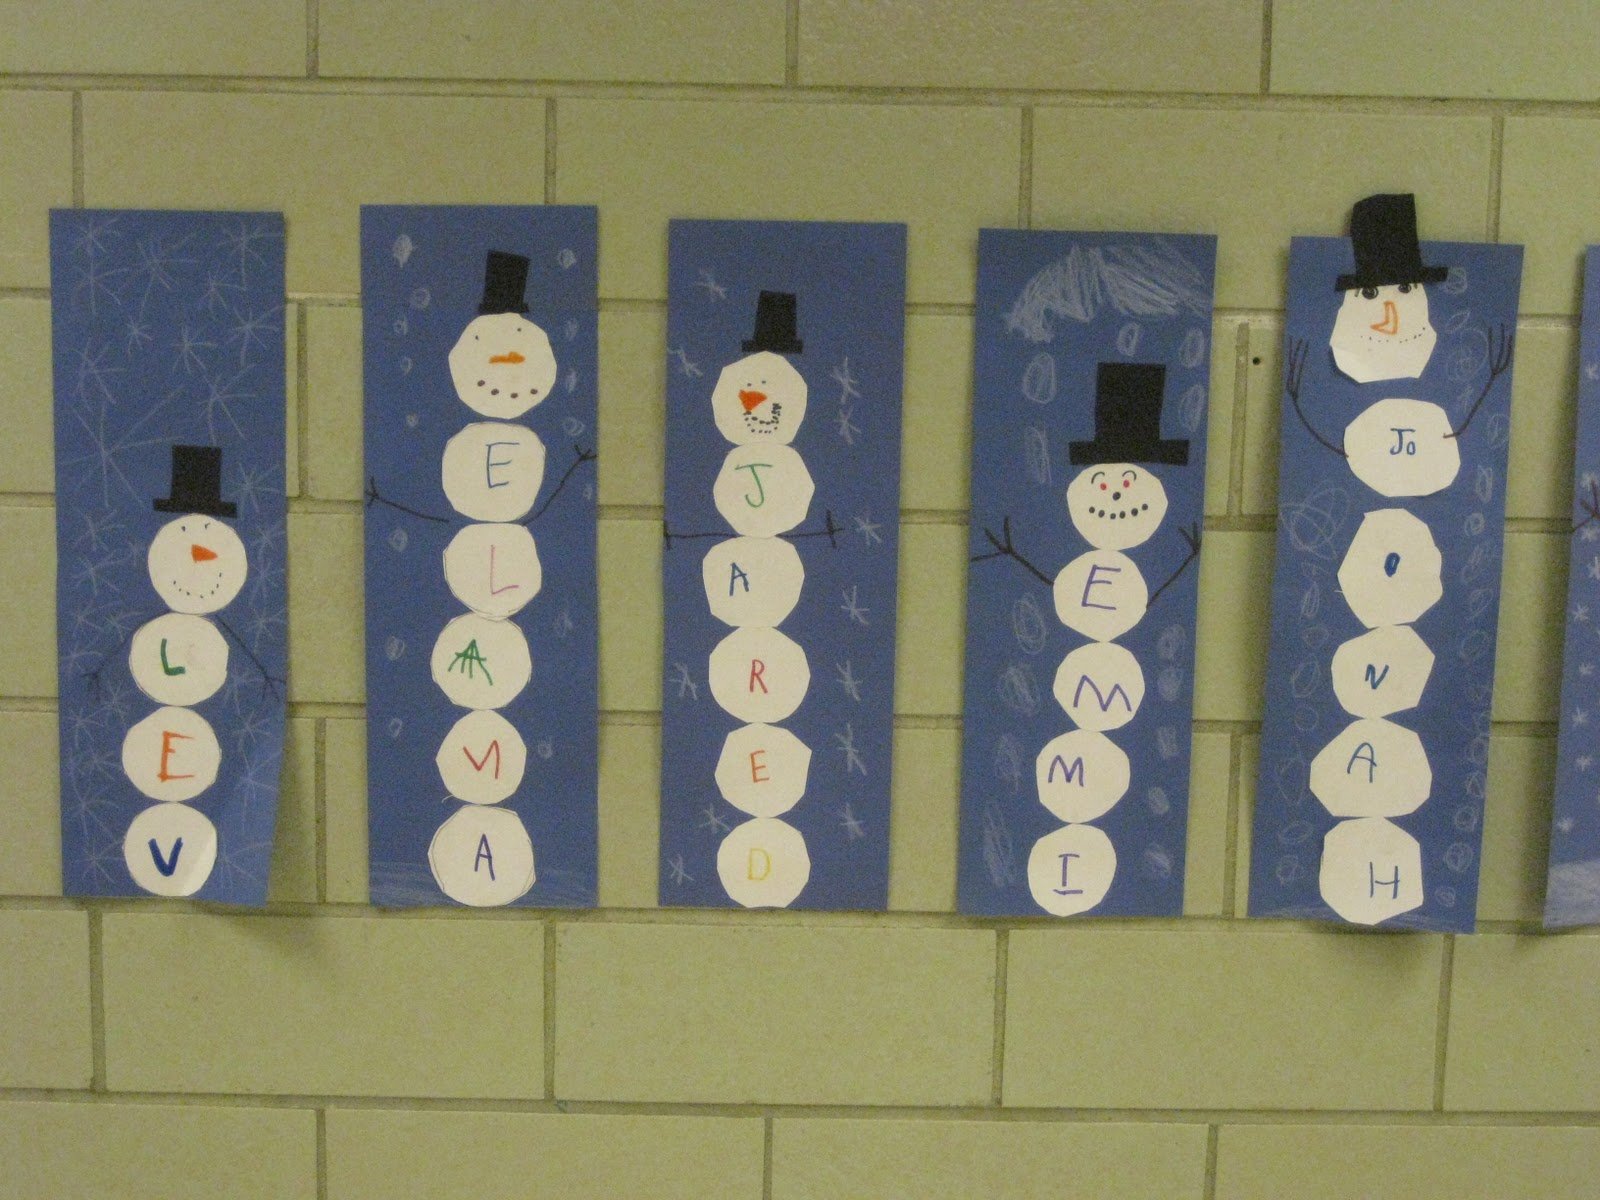 ... graph snowmen. Which snowman was the tallest? Which was the shortest